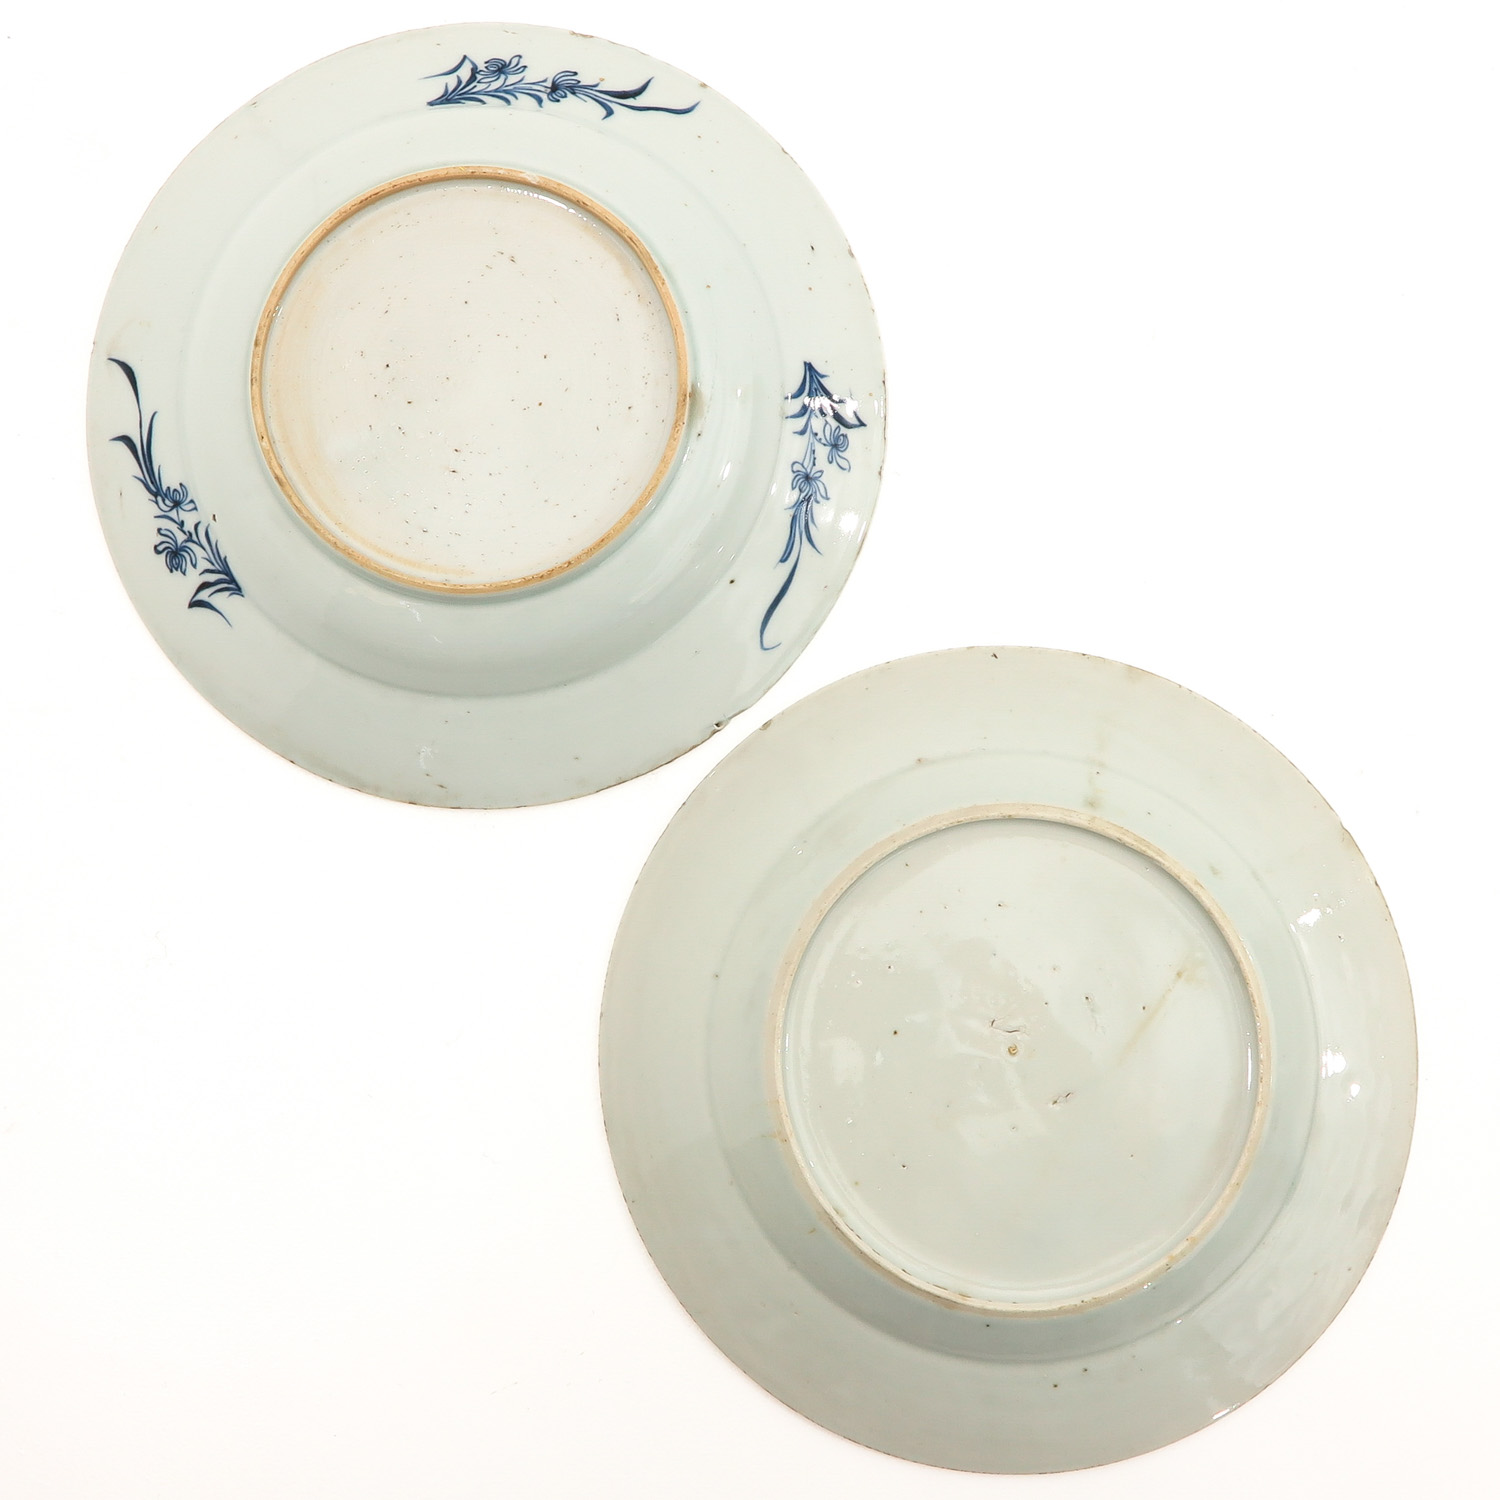 A Lot of 5 Blue and White Plates - Image 4 of 10